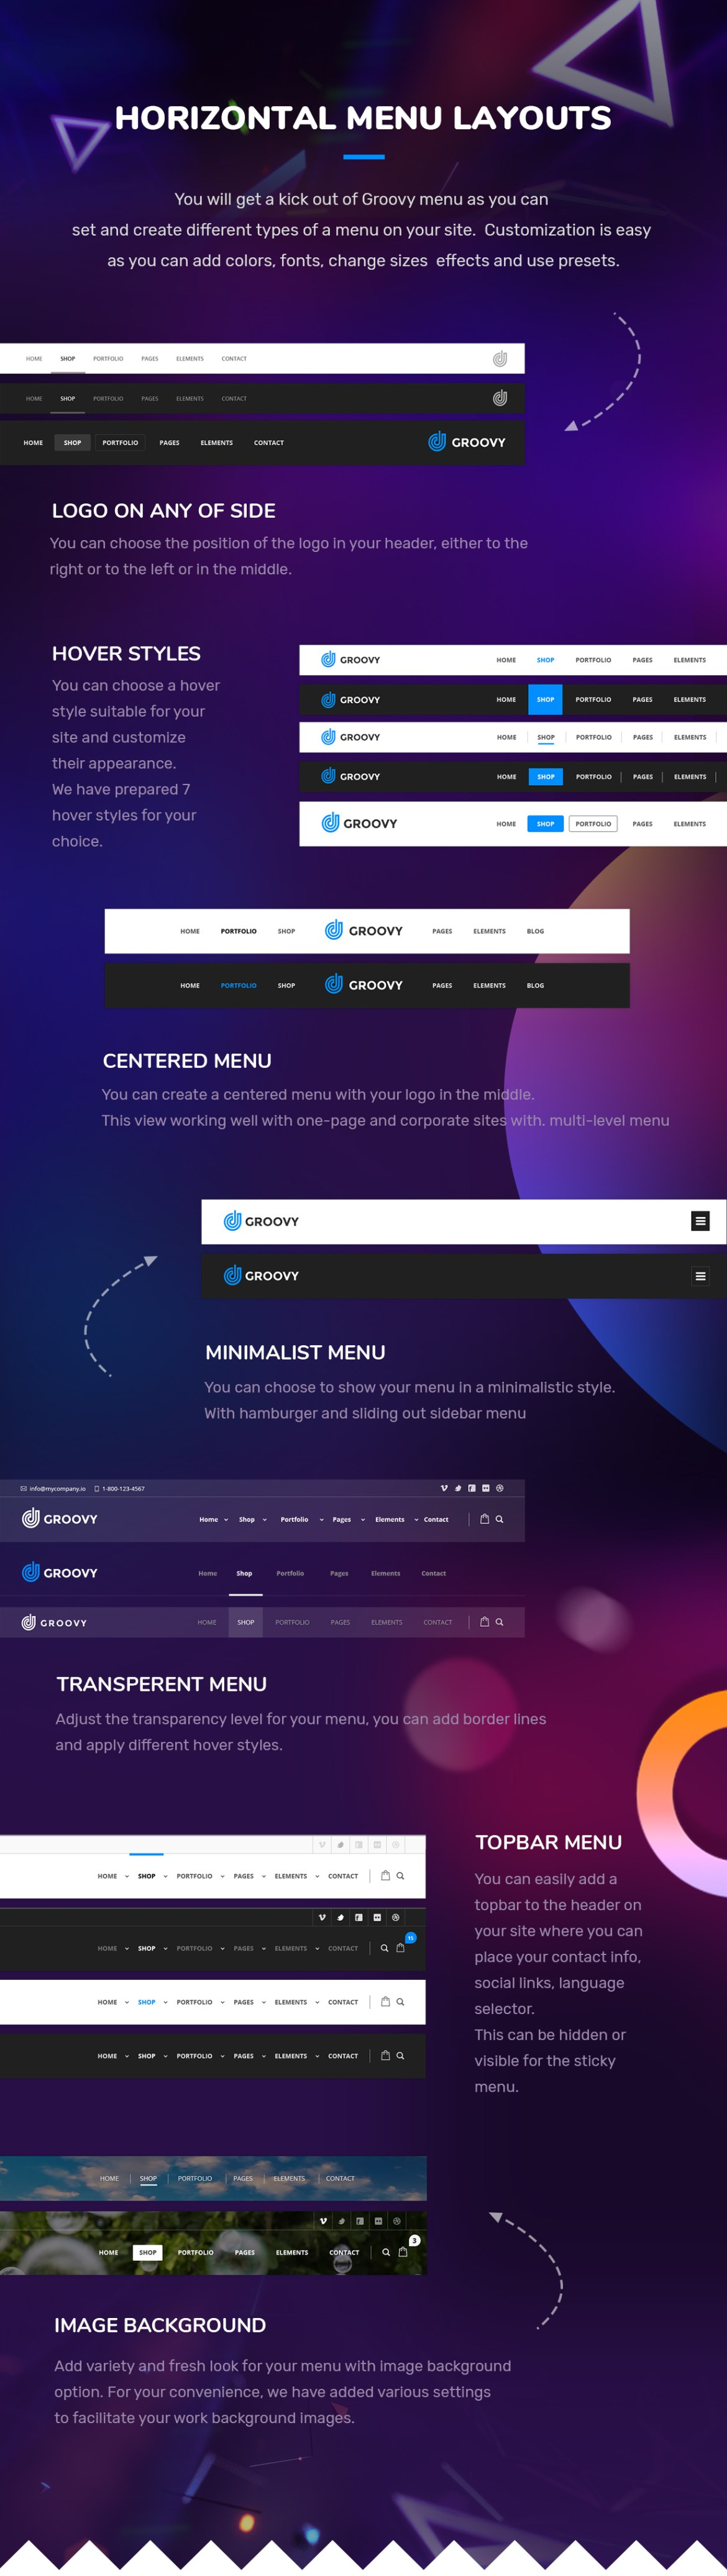 horizontal menu wordpress plugin